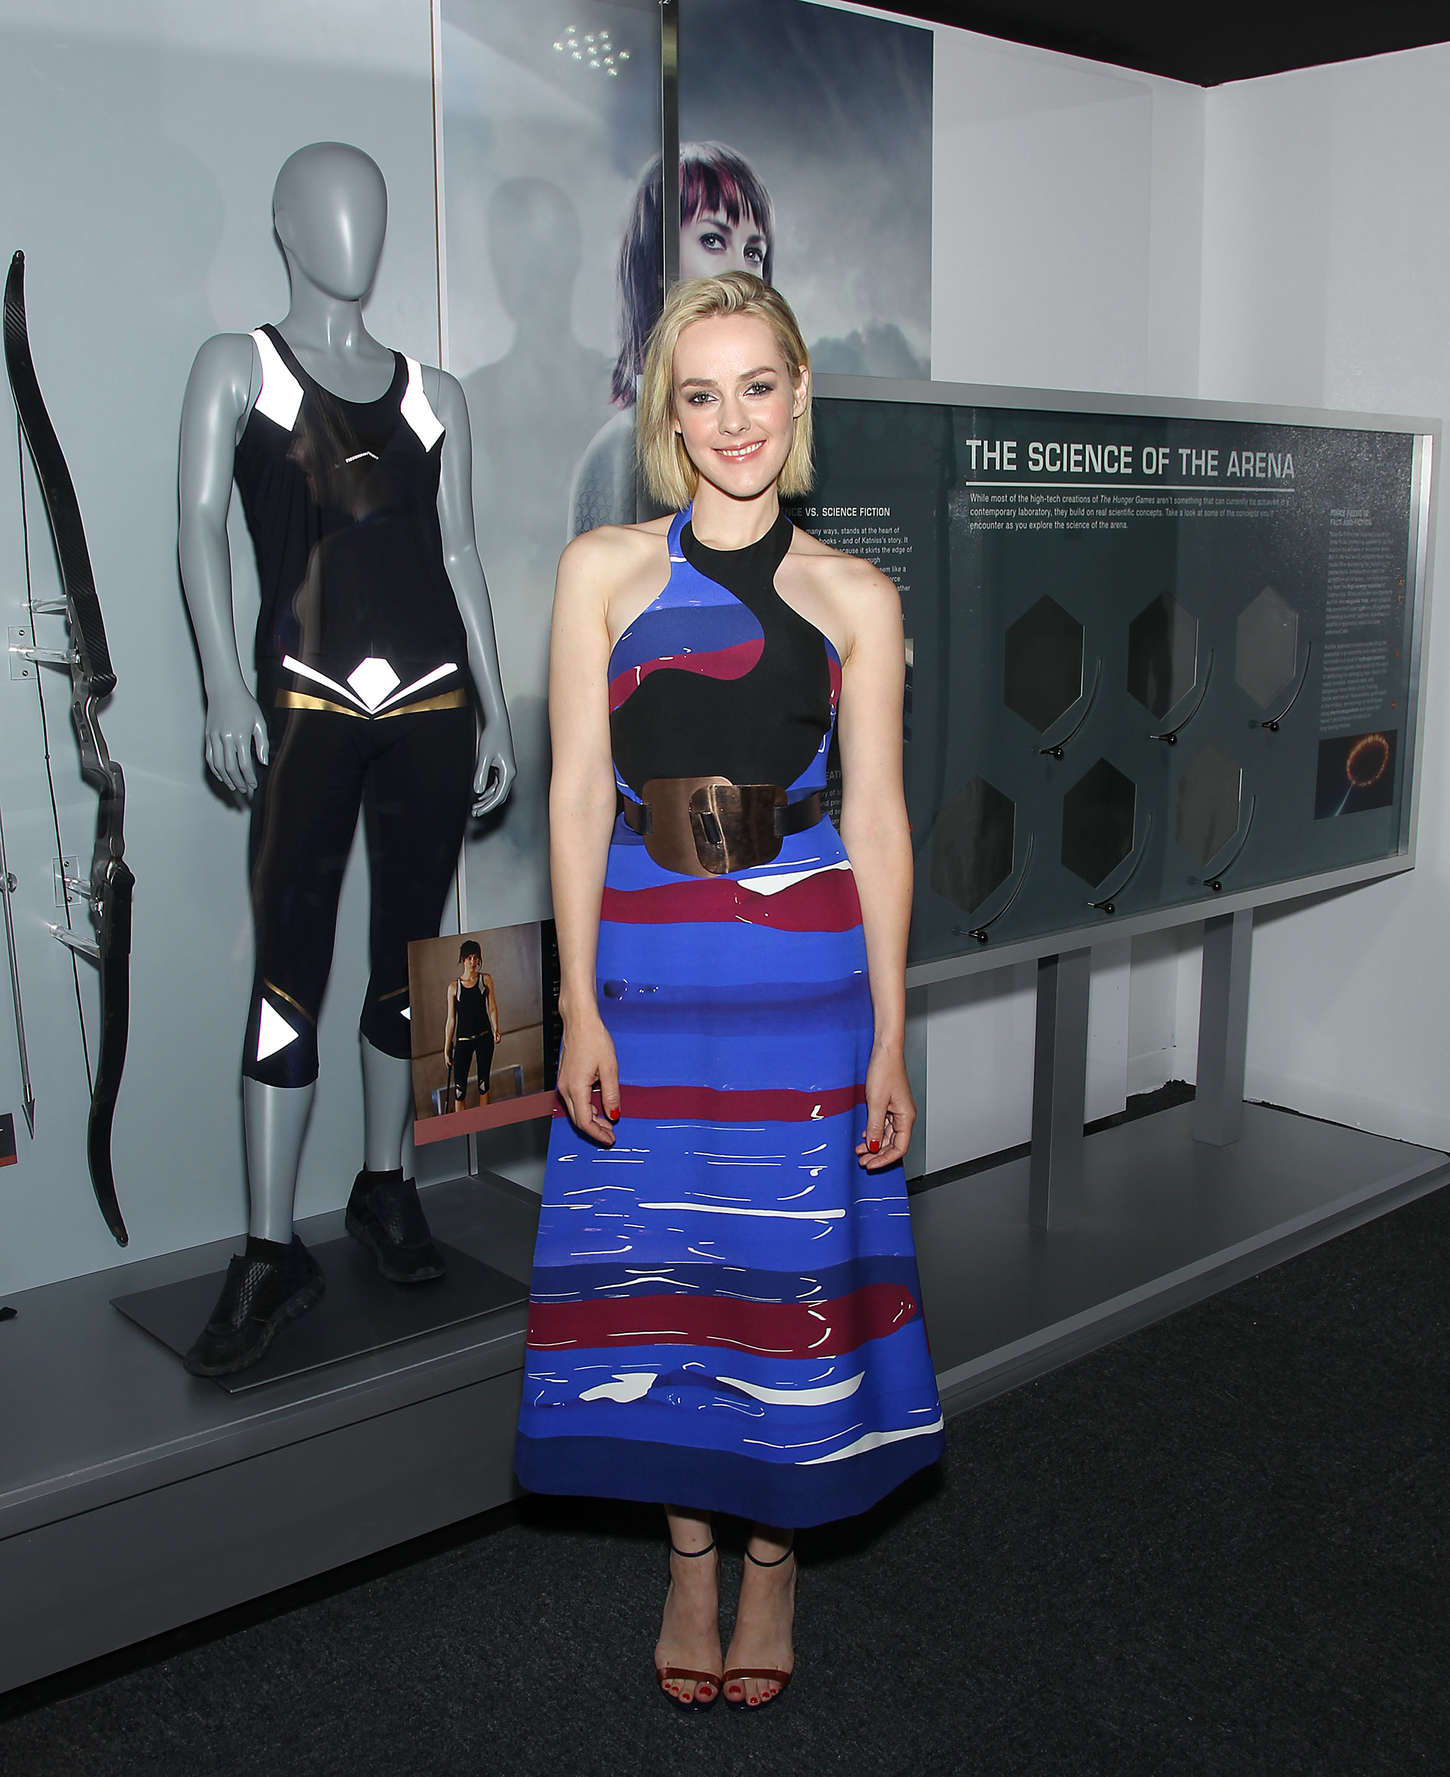 Jena Malone The Hunger Games The Exhibition VIP Event in New York